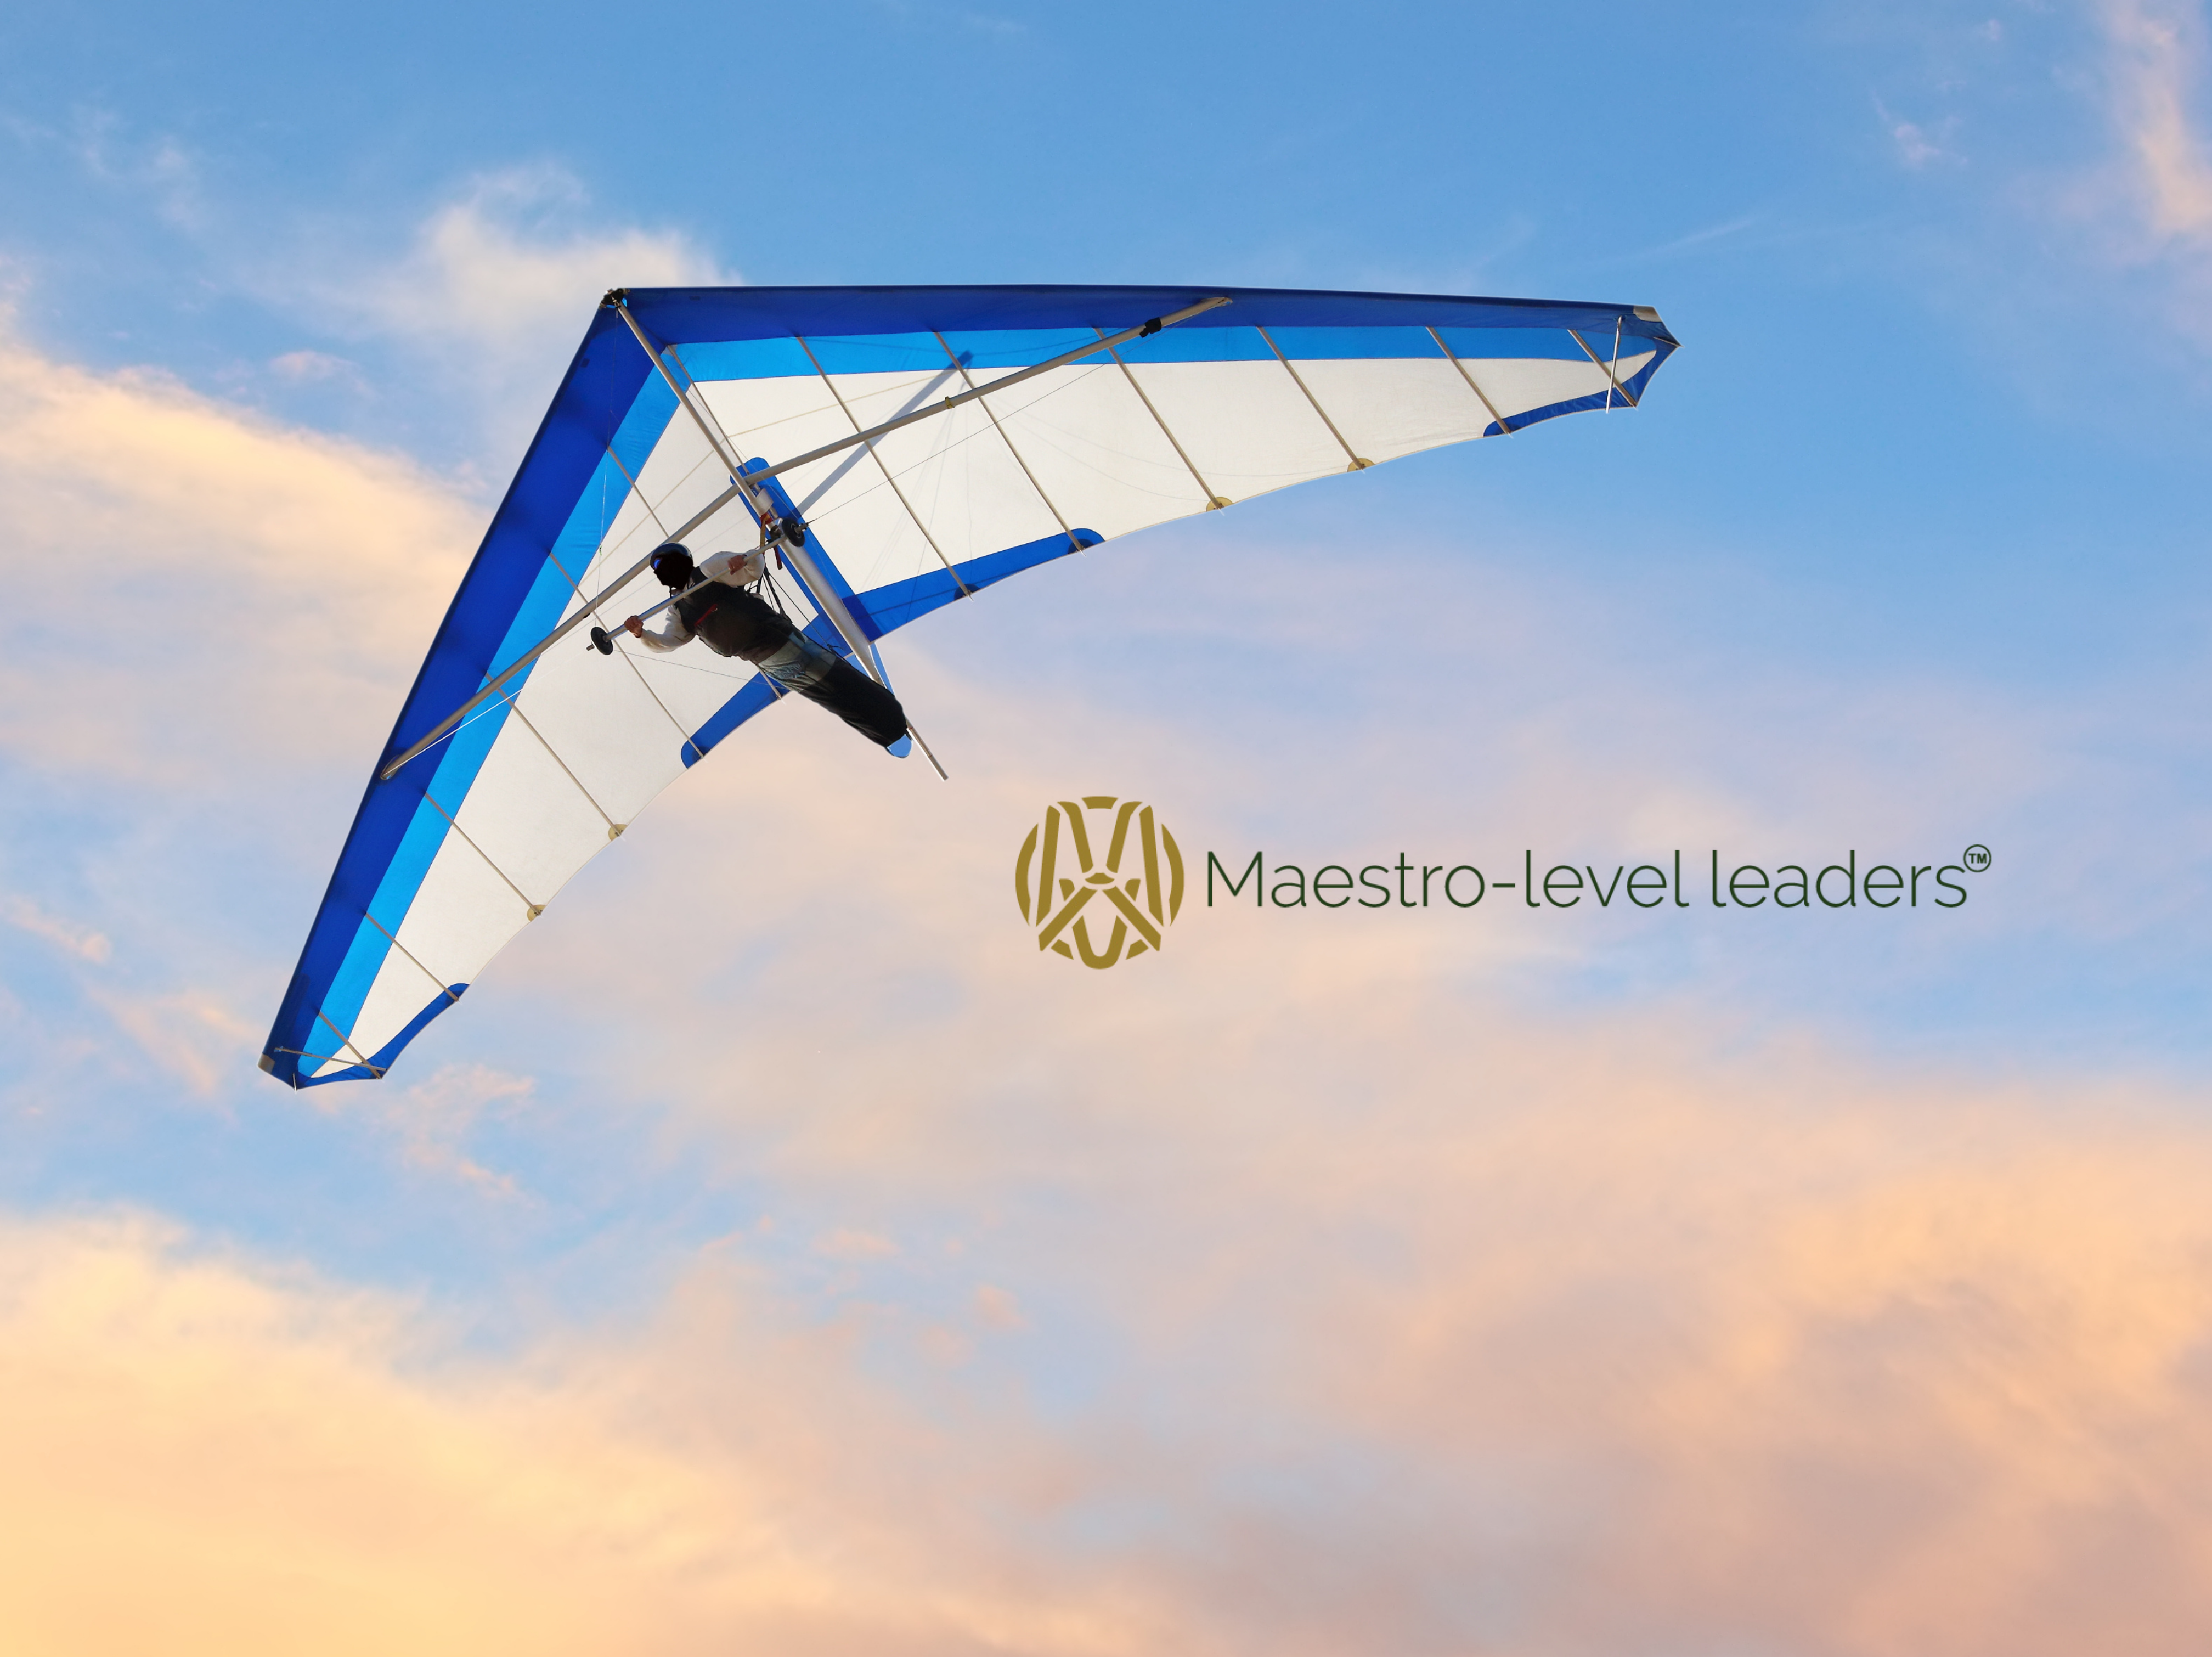 Maestro-level leaders_About Us Image